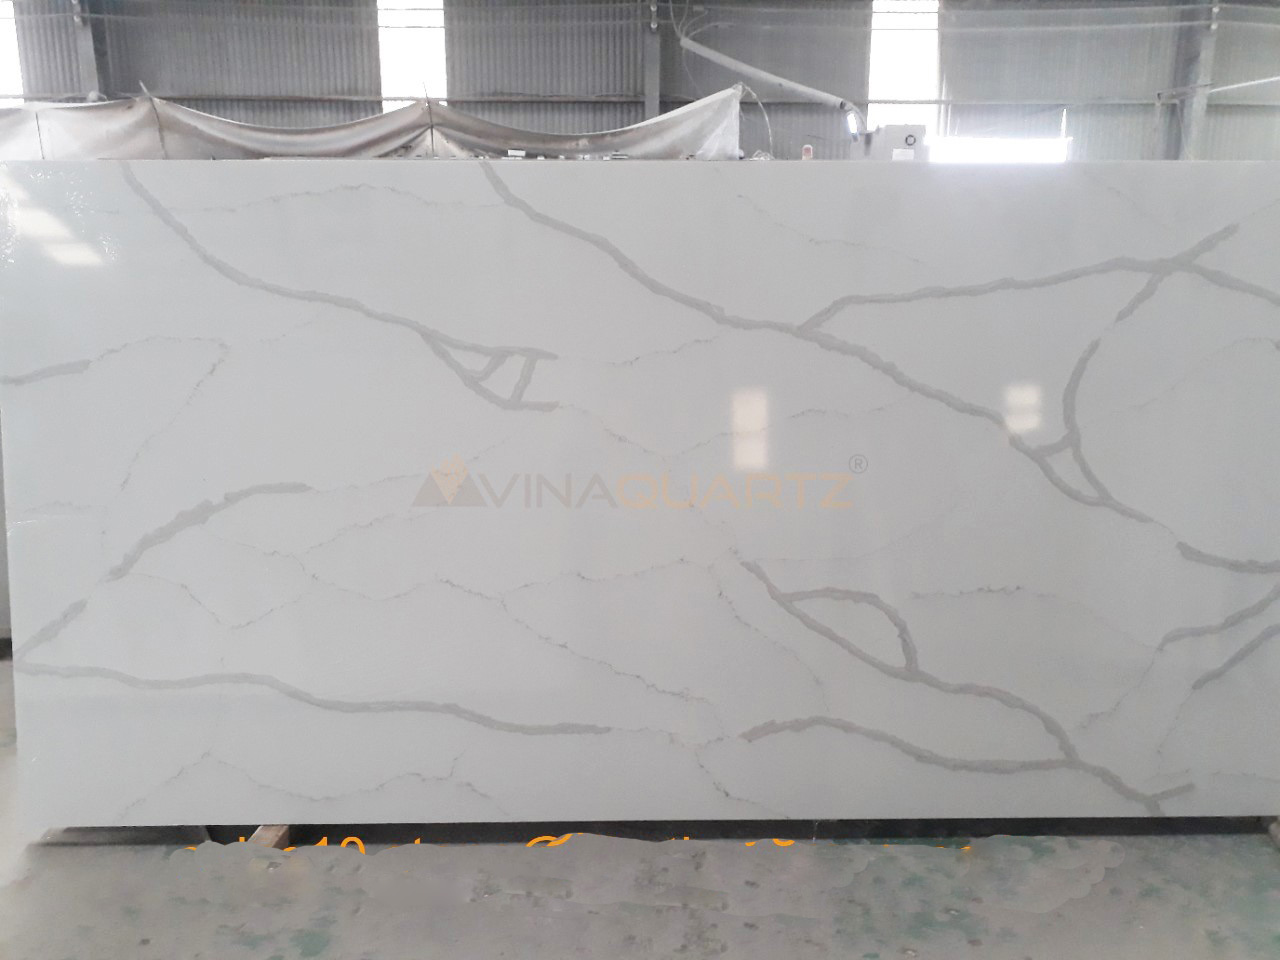 Lowest Price Artificial Quartz from Vietnam